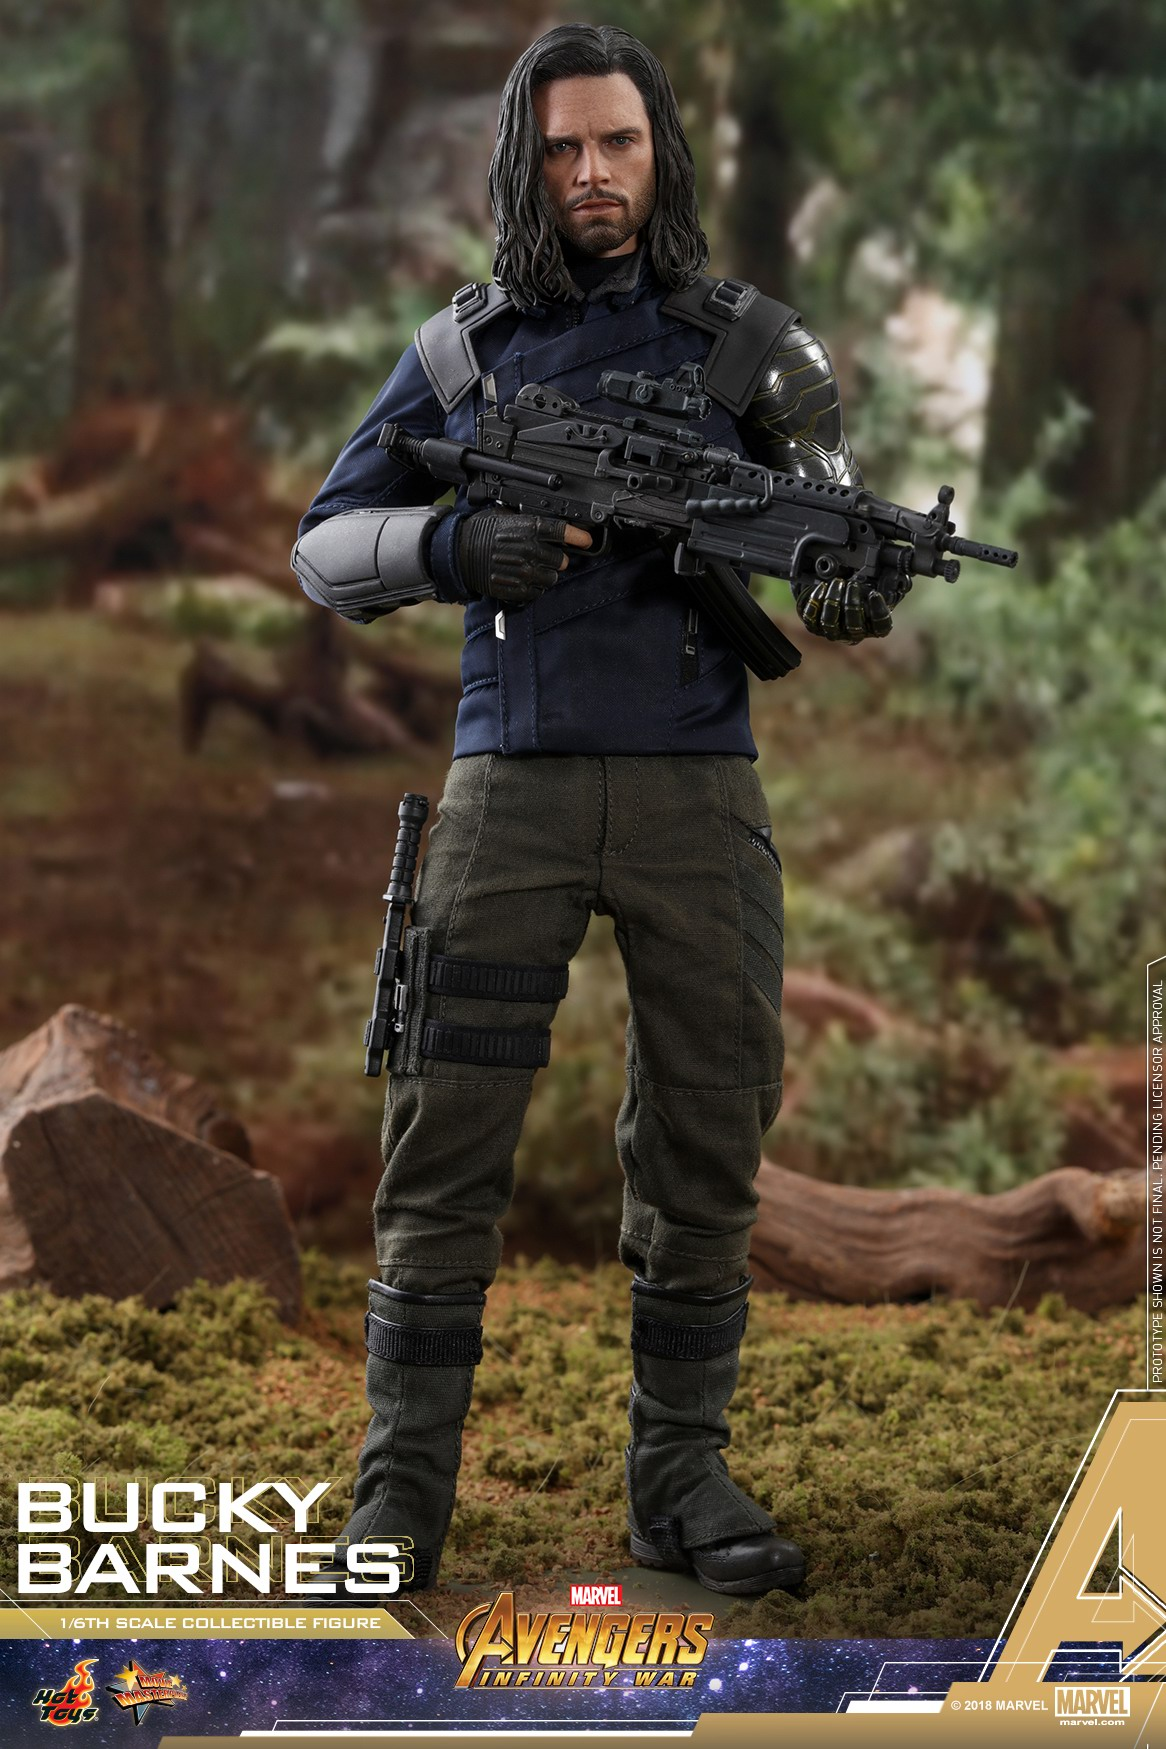 Hot-Toys-AIW-Bucky-Barnes-collectible-figure_PR1.jpg